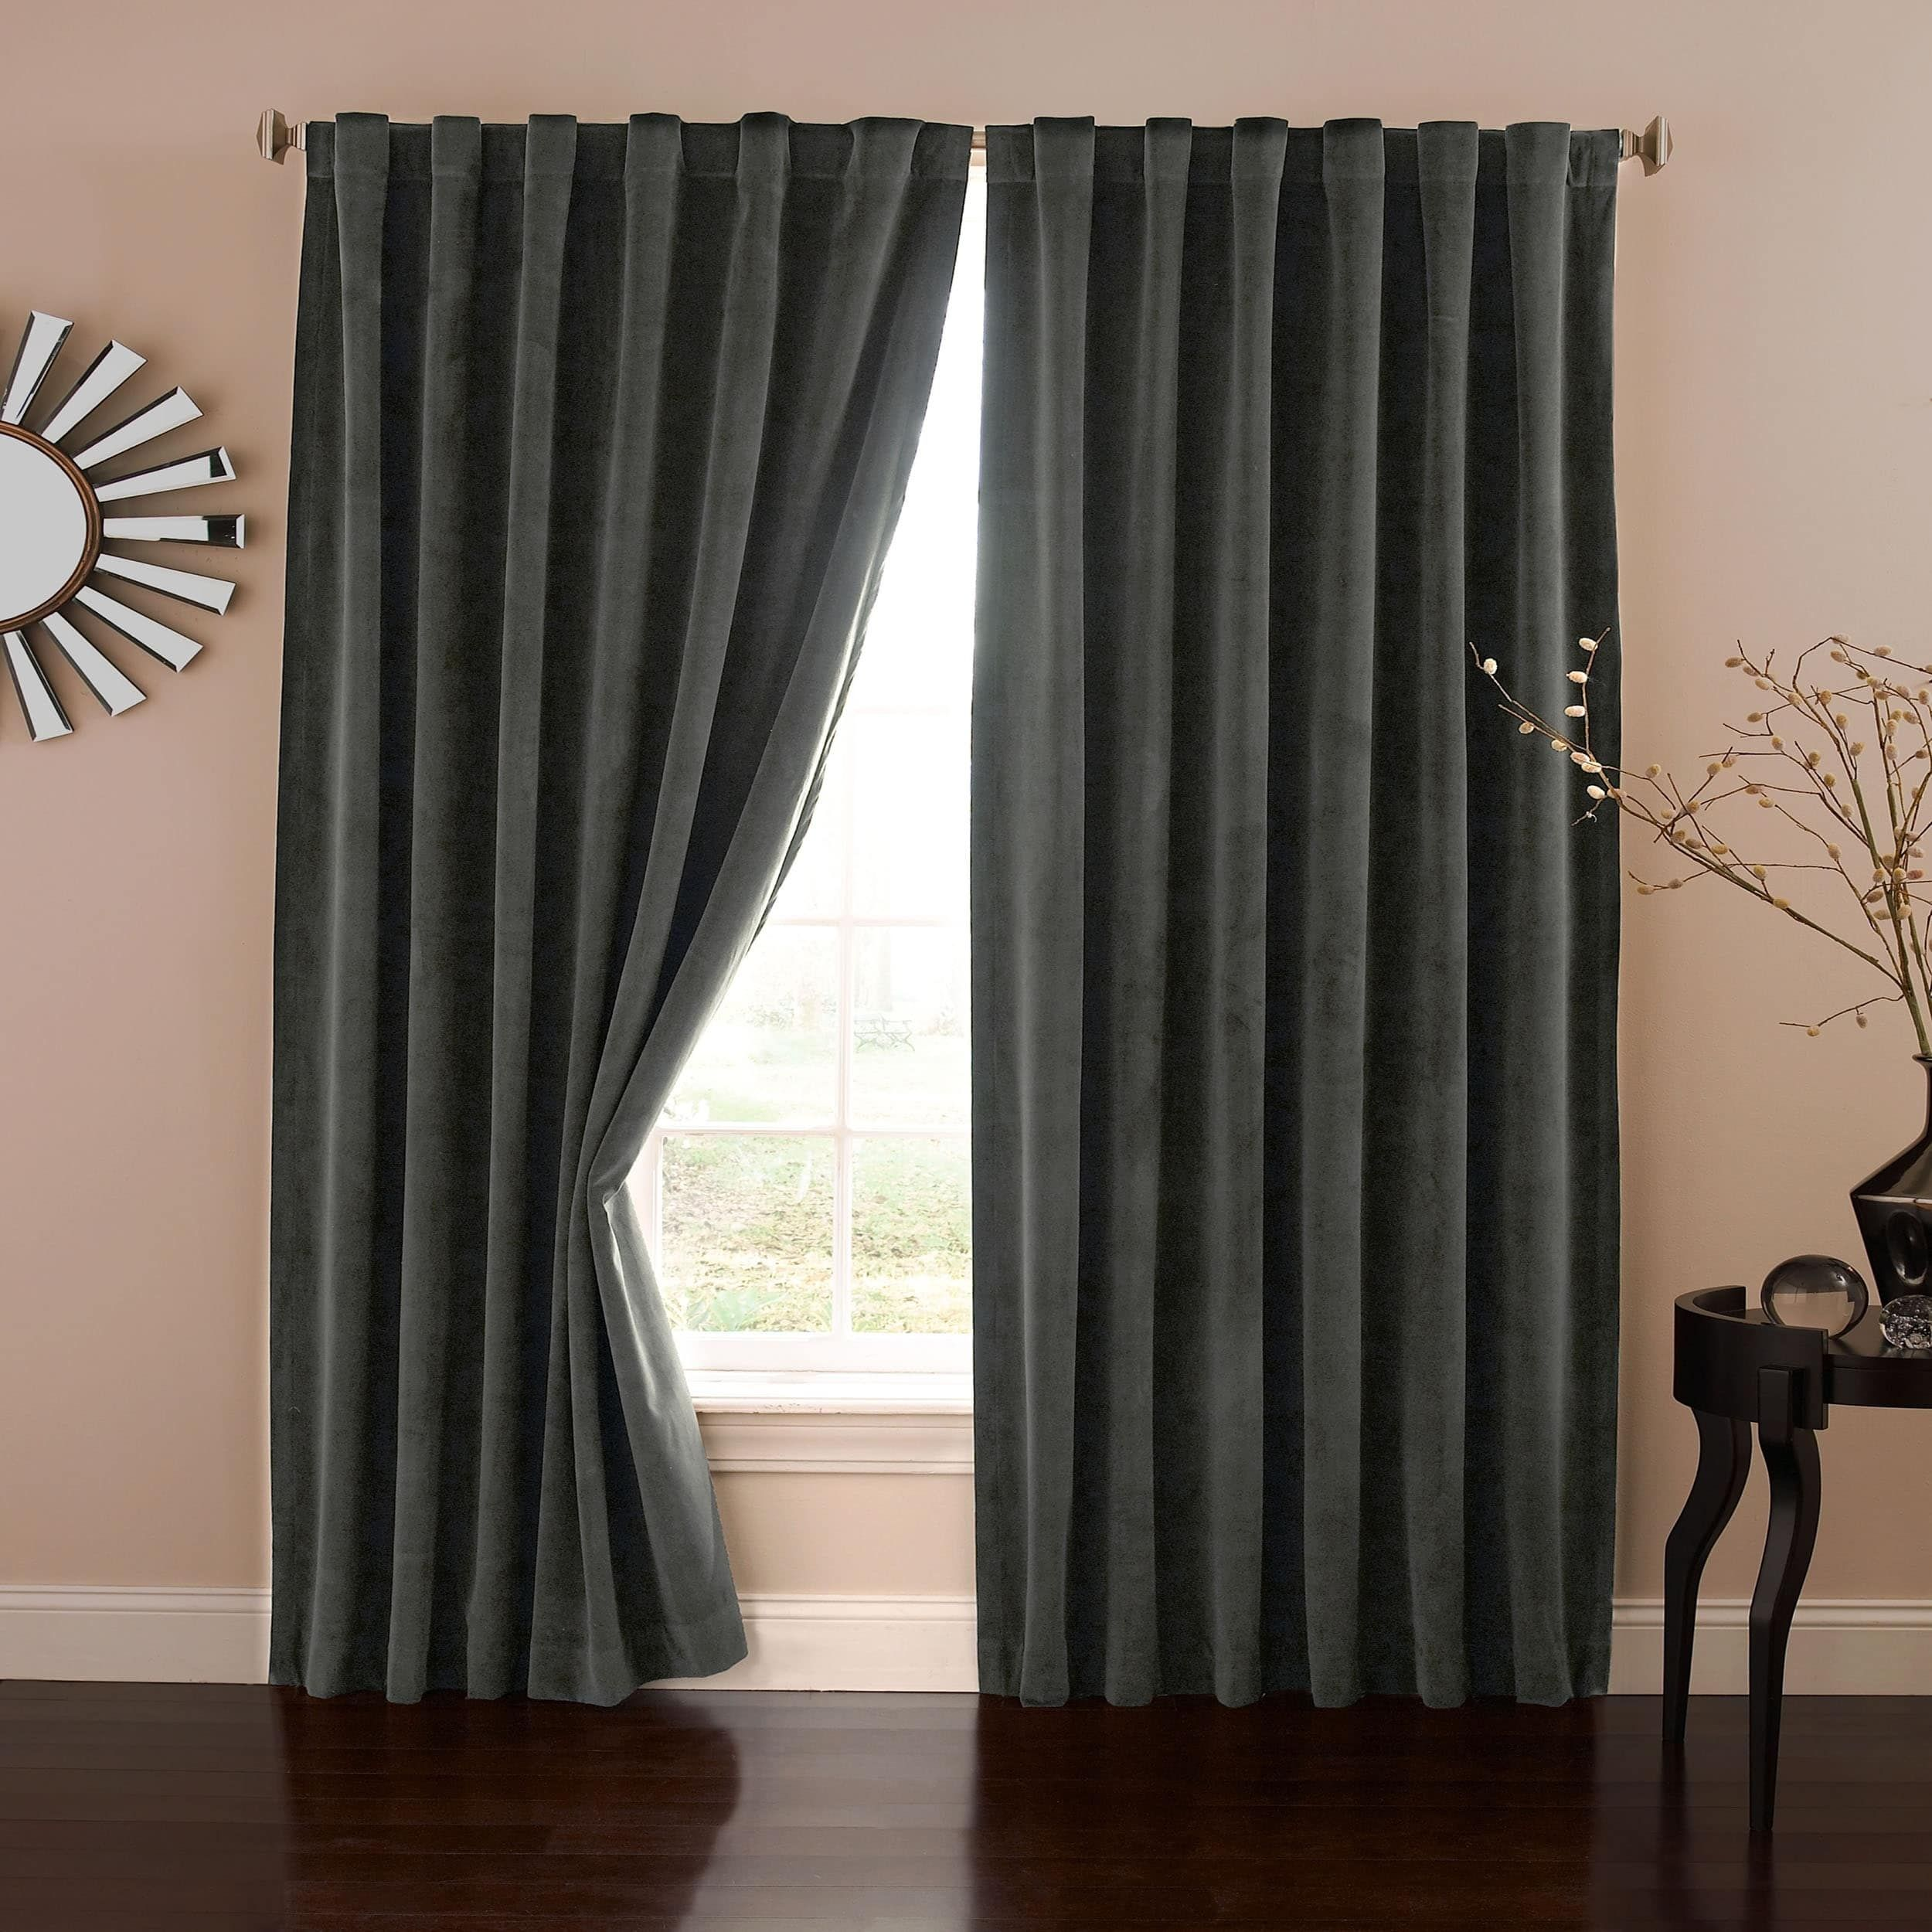 heavy ready blackout made w d curtains crushed stylish champagne interior stunning velvet lined eyelet